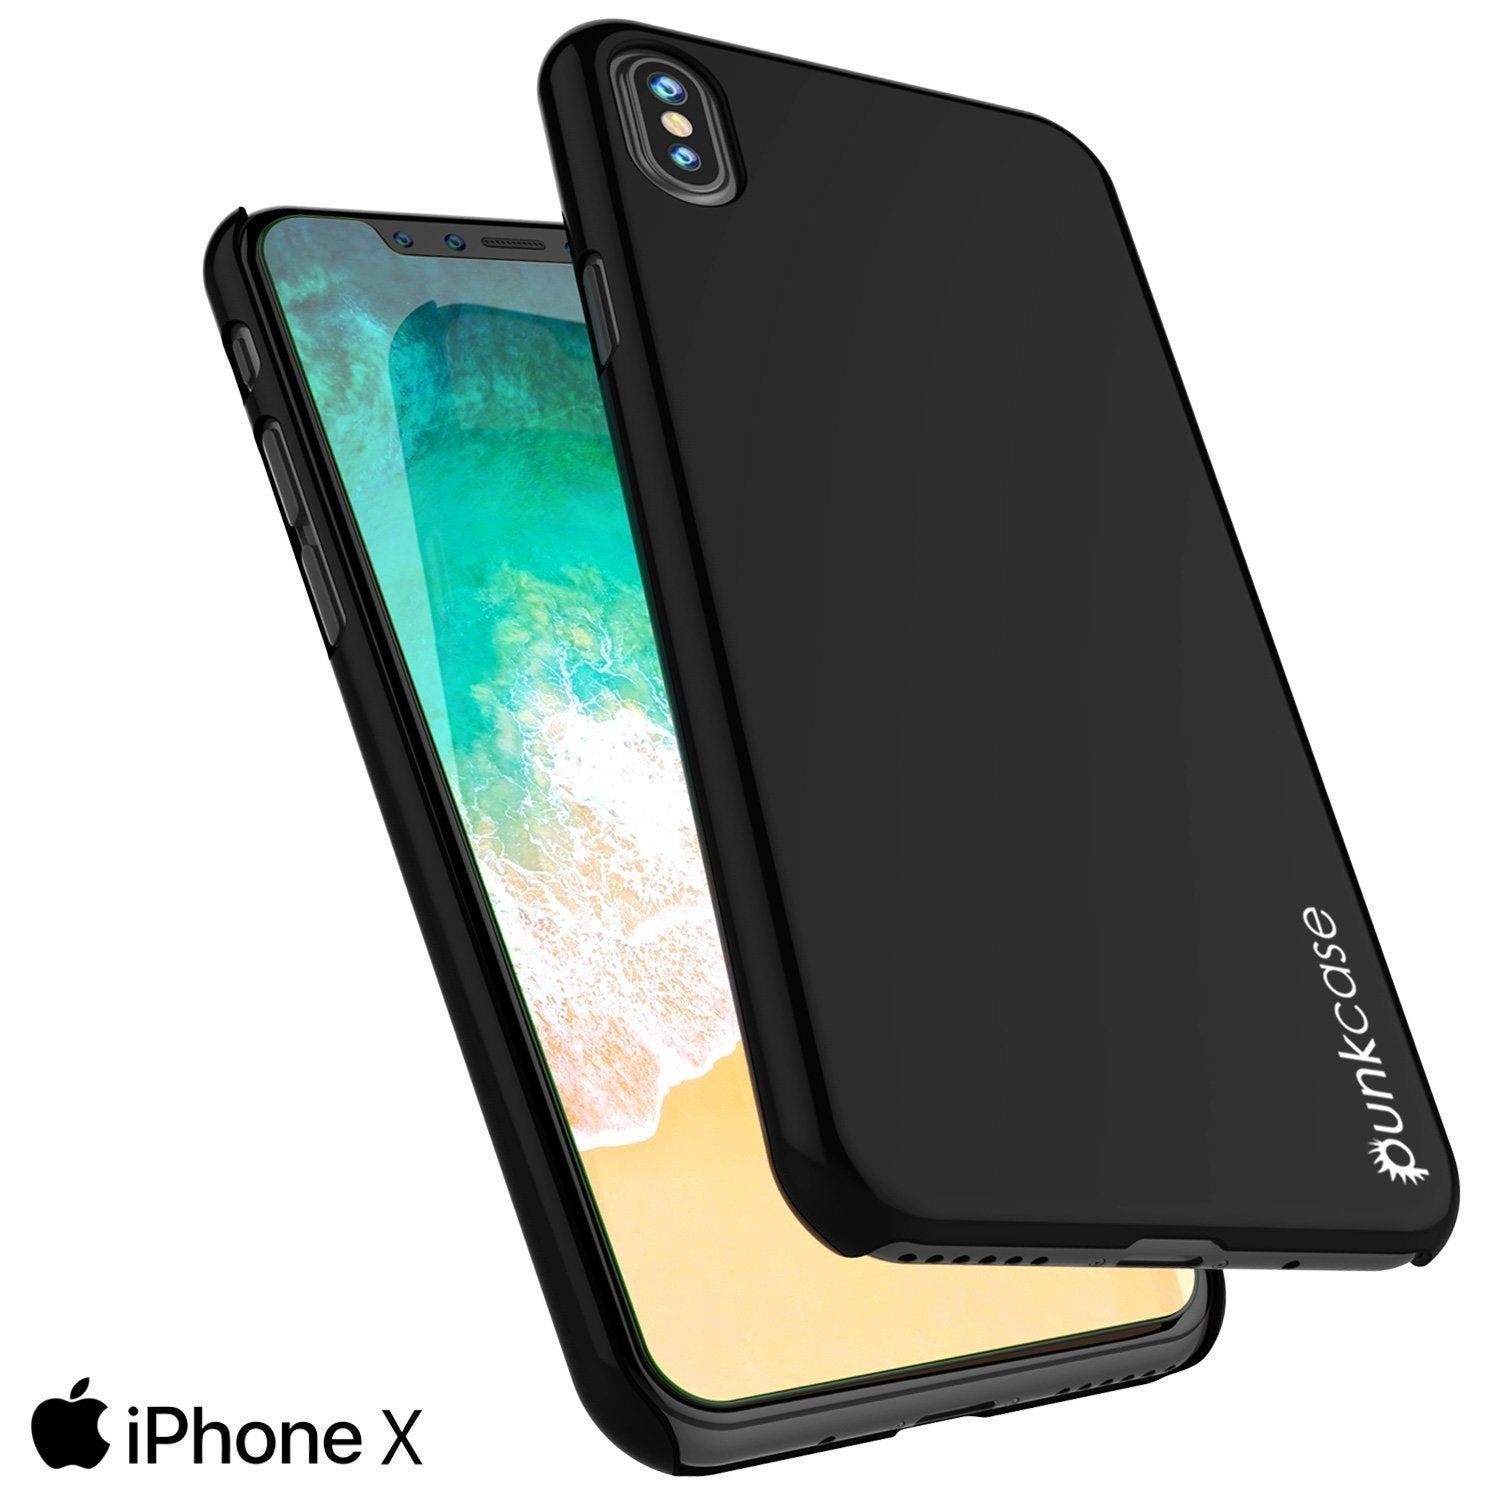 iPhone X Case, Punkcase [Solid Series] Ultra Thin Cover [shockproof] [dirtproof] for Apple iPhone 10 [jet black] - PunkCase NZ